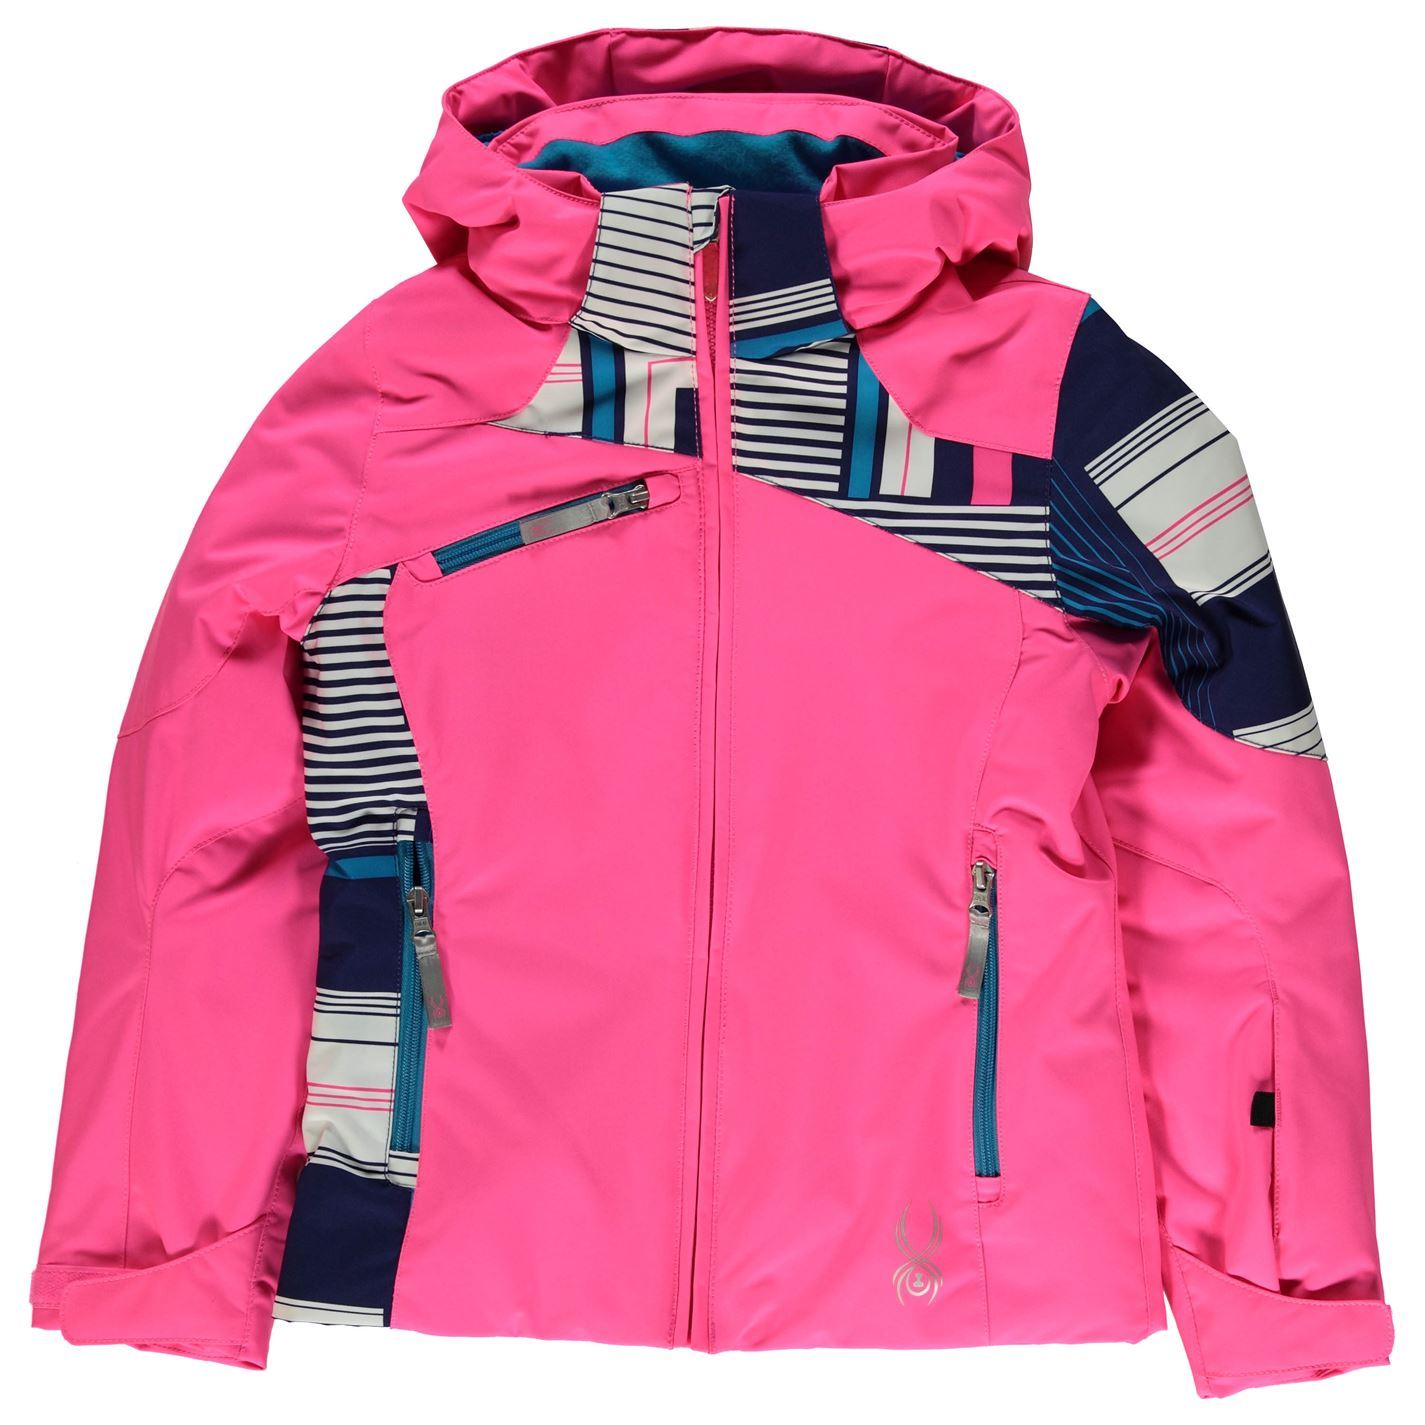 Burton ski jackets range from $ to $ and Spyder jackets range from $ to $, depending on the types of features the jacket offers. Patagonia's insulated Rider jackets retail for $ for boys' and girls' styles. North Face ranges from $99 to $ Helly Hansen and Orage range from $ to $ Cloudveil insulated jackets range from $89 to $ Comparison Shopping. Look for additional add .